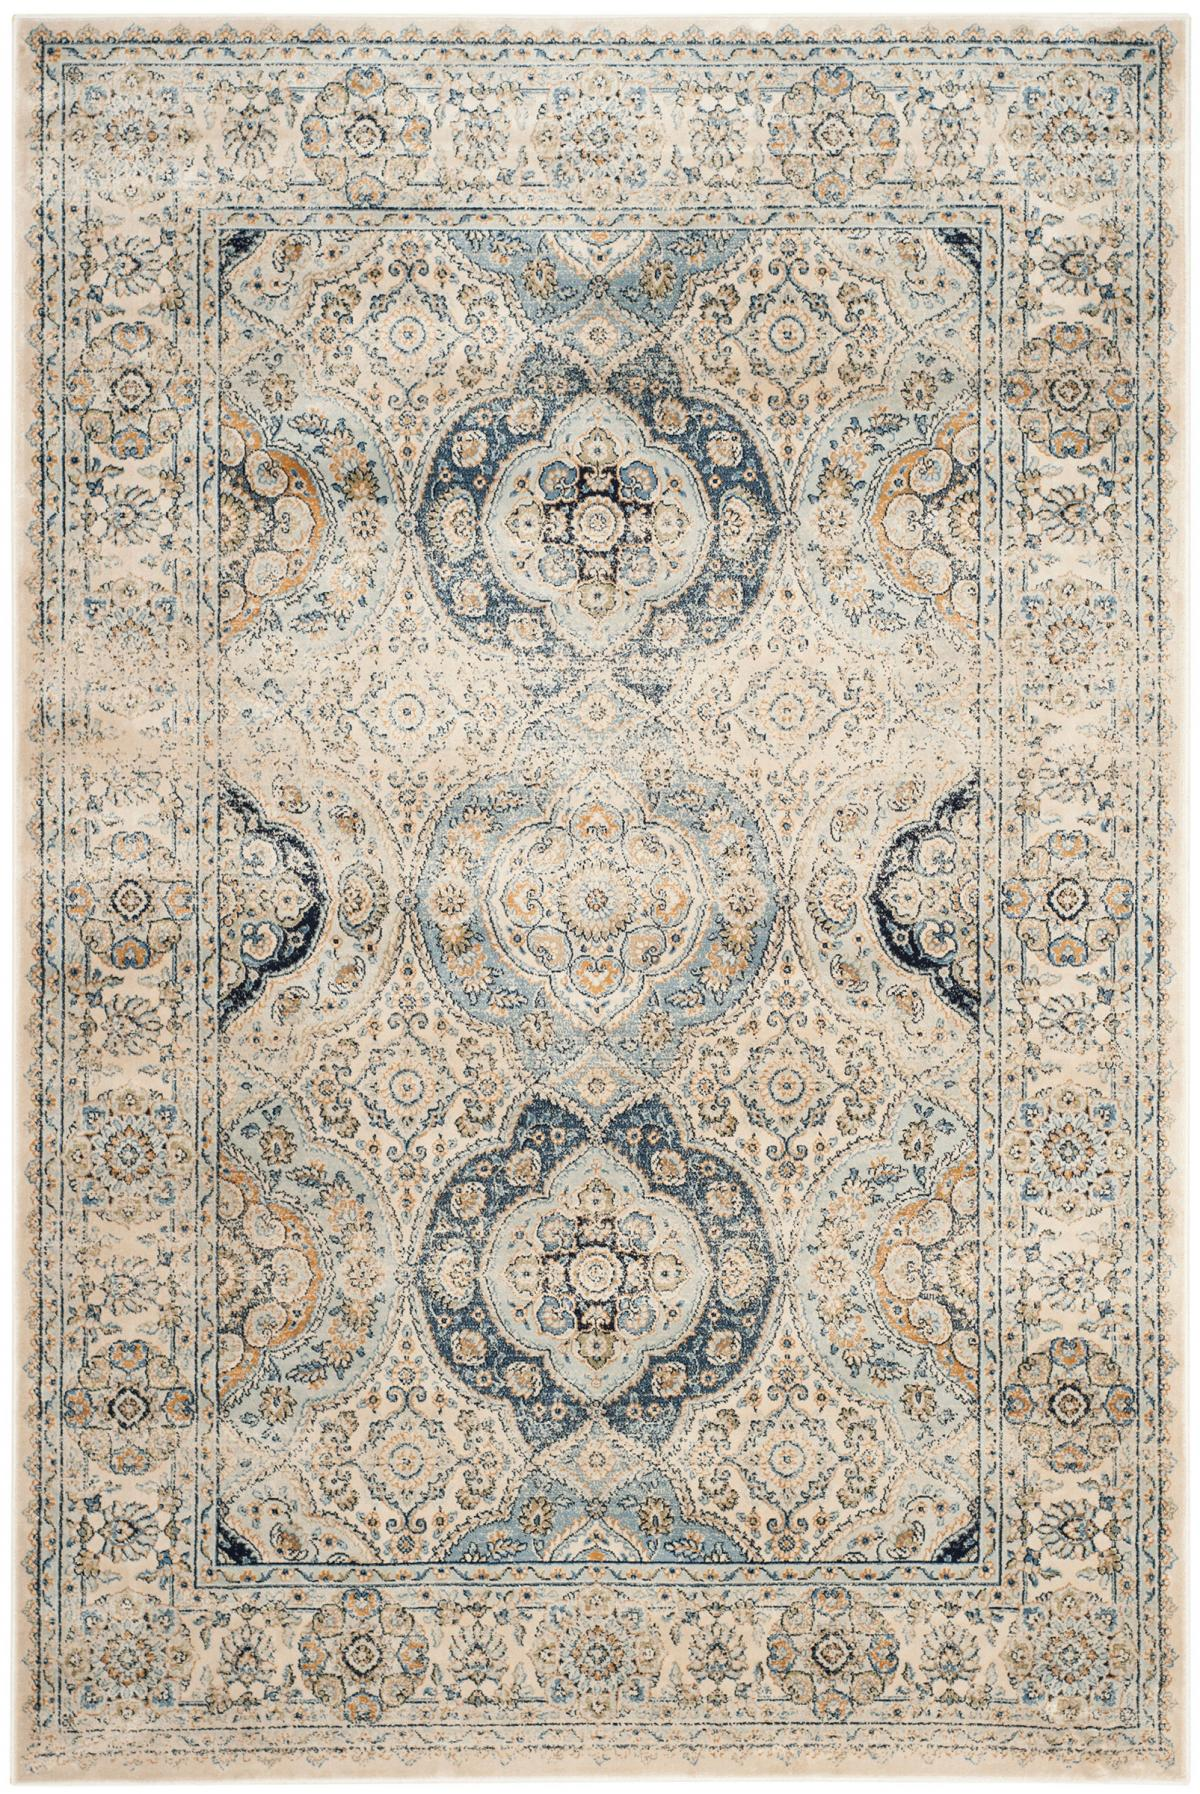 Images of Rug PGV611C - Persian Garden Vintage Area Rugs by vintage area rugs